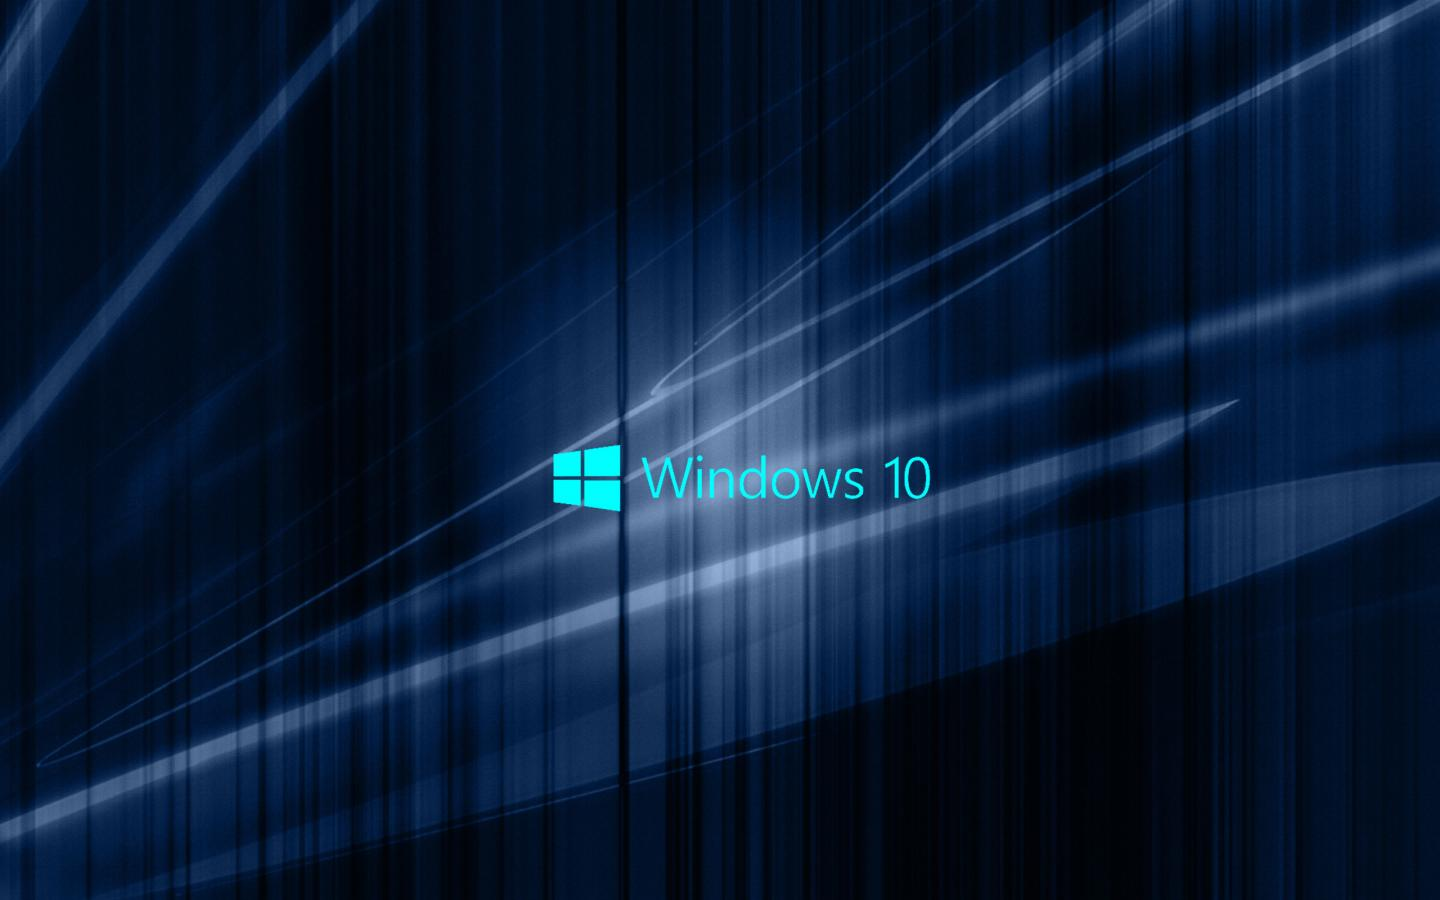 Windows 10 Wallpaper With Blue Abstract Waves Hd